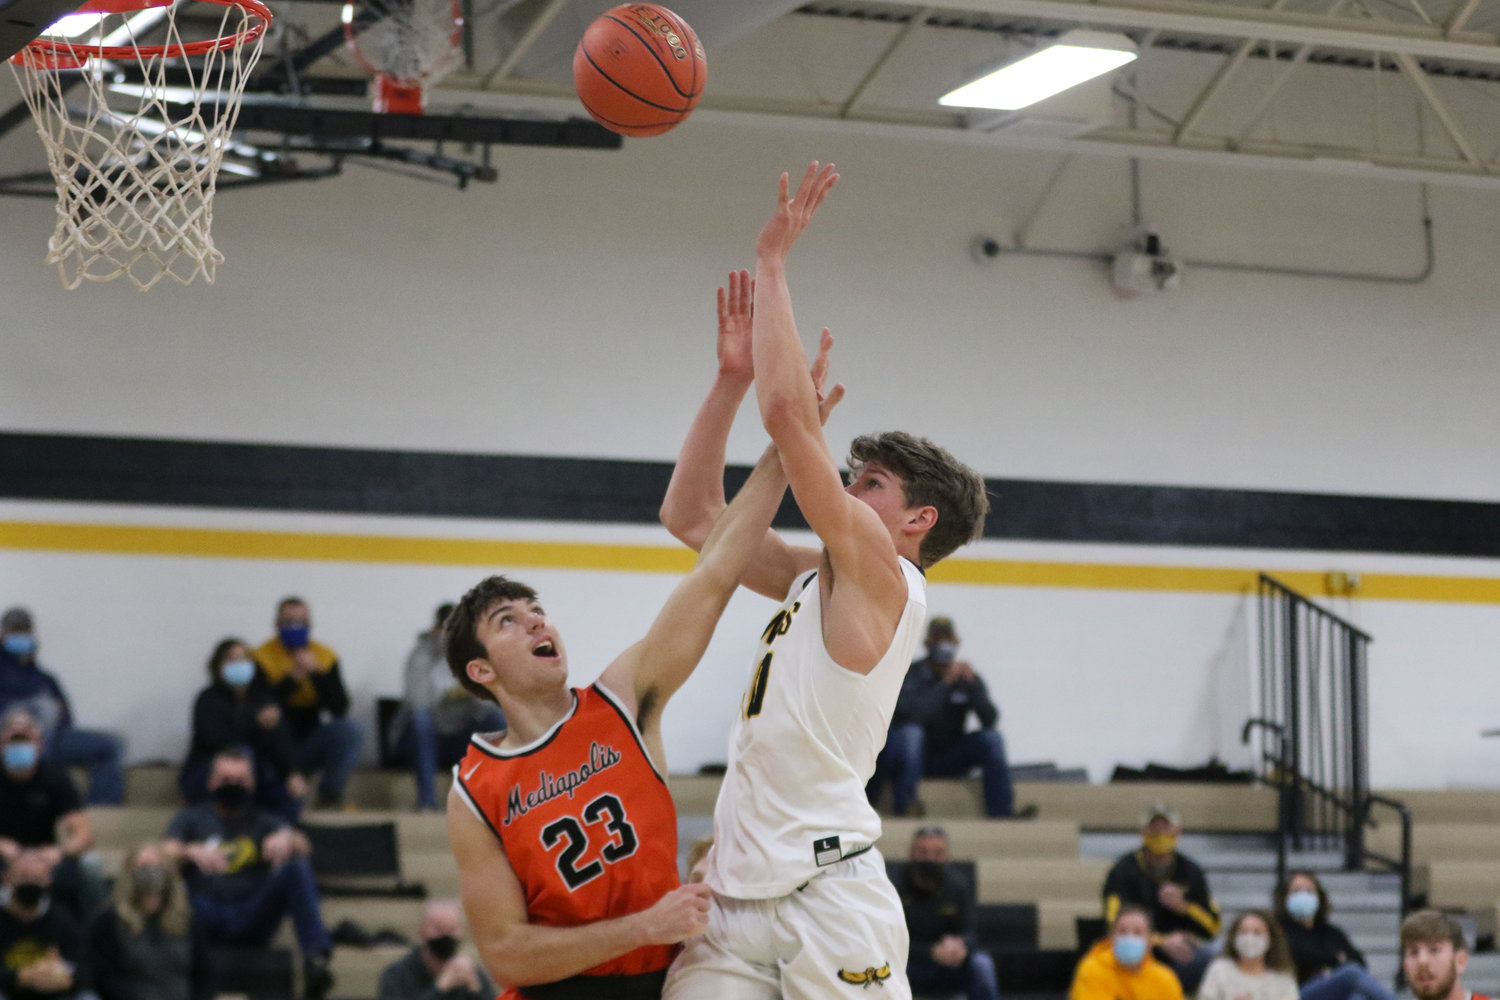 Mid-Prairie forward Carter Harmsen shoots over a Bulldog defender during the first quarter of a scrimmage with Mediapolis in Wellman on Saturday, November 21.